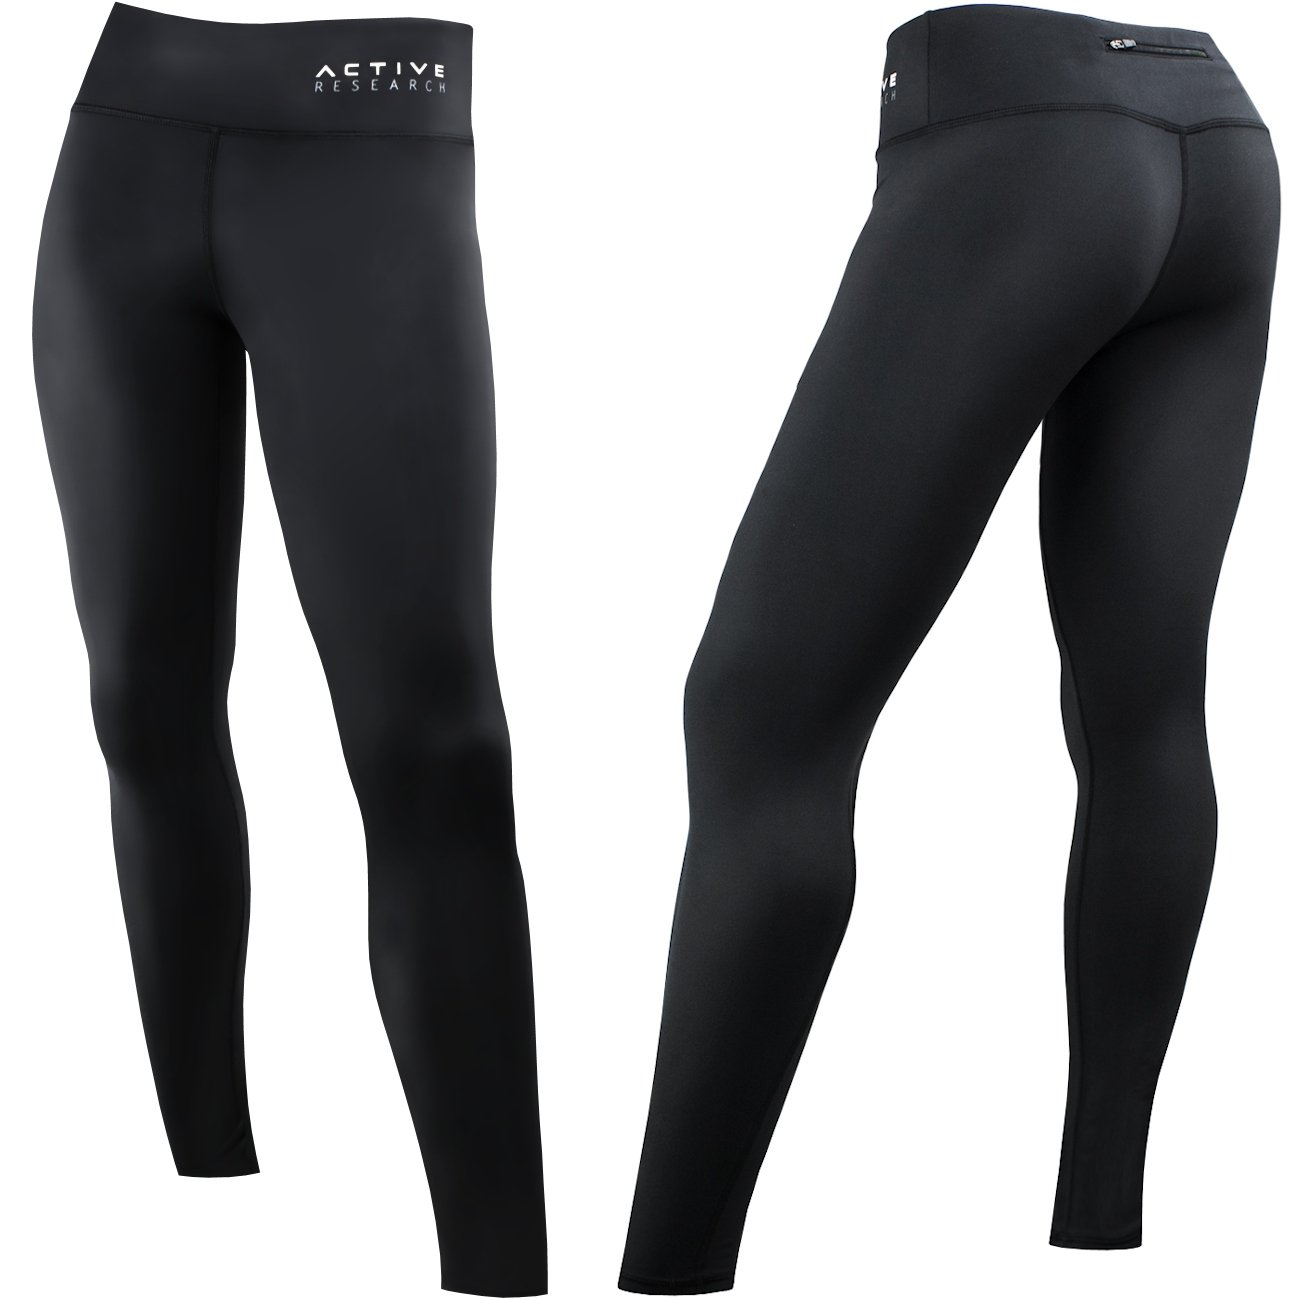 #4 Active Research Women's Compression Pants